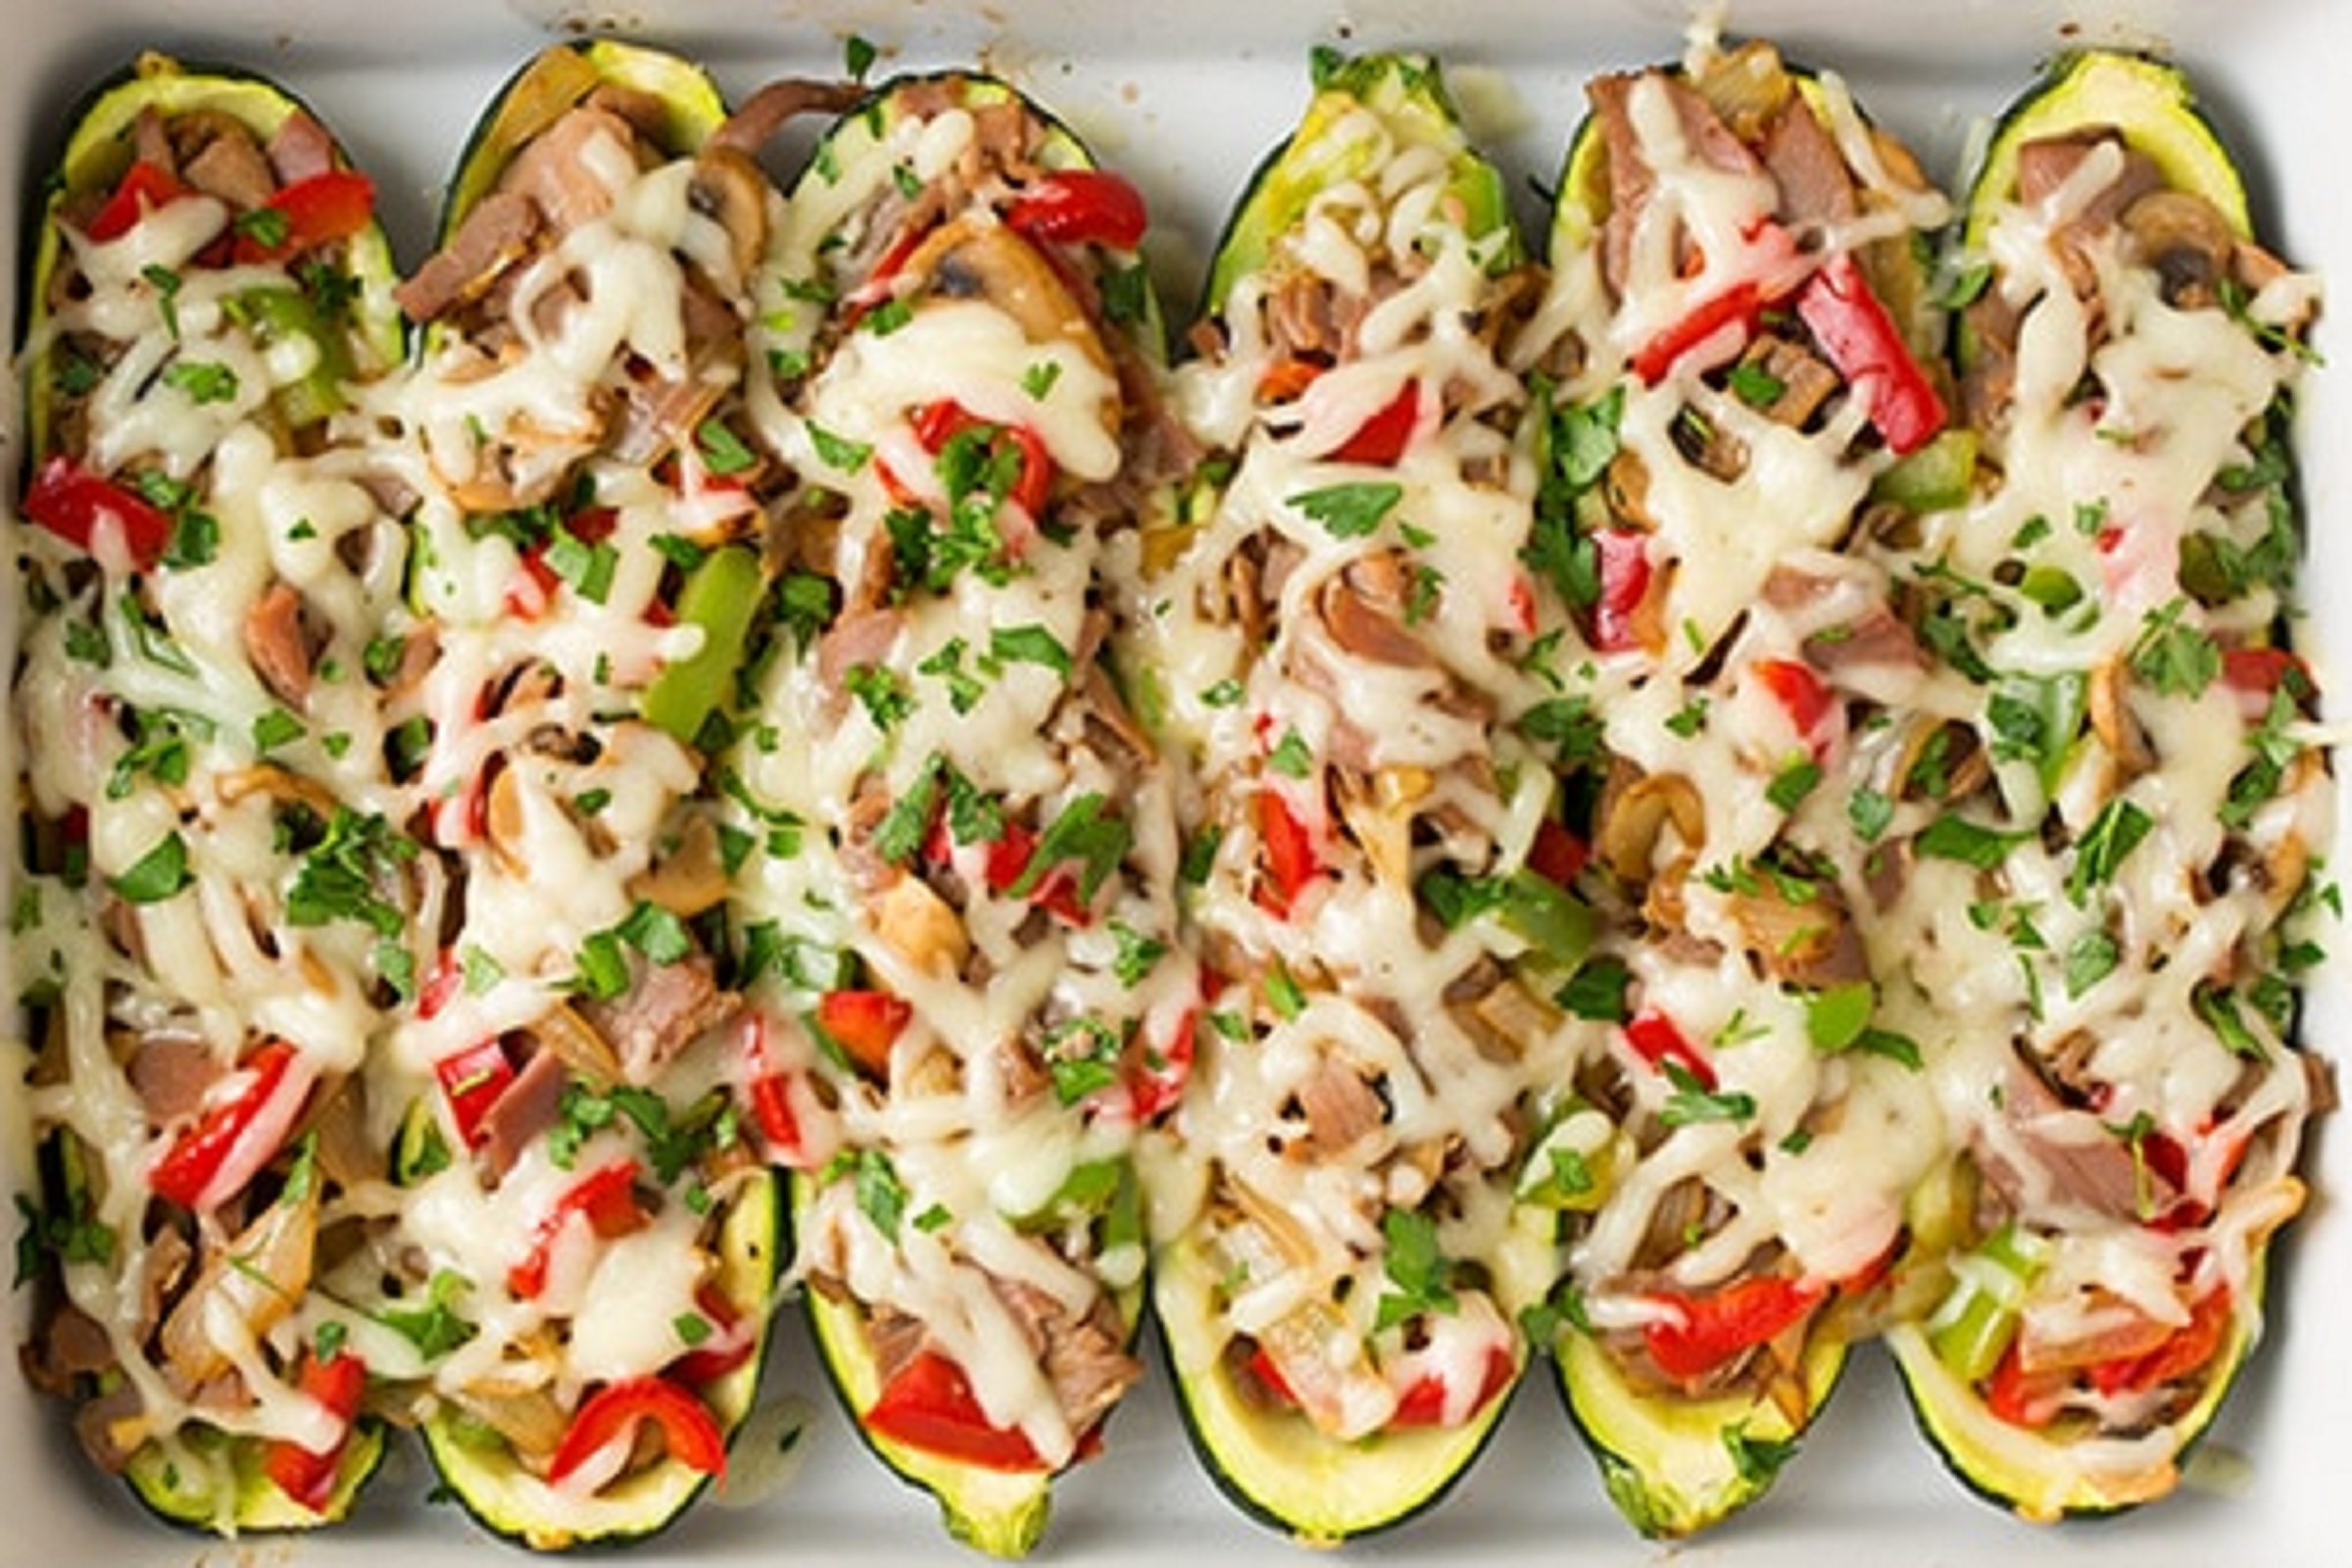 Philly Cheese Steak Zucchini by Elite Training Facility